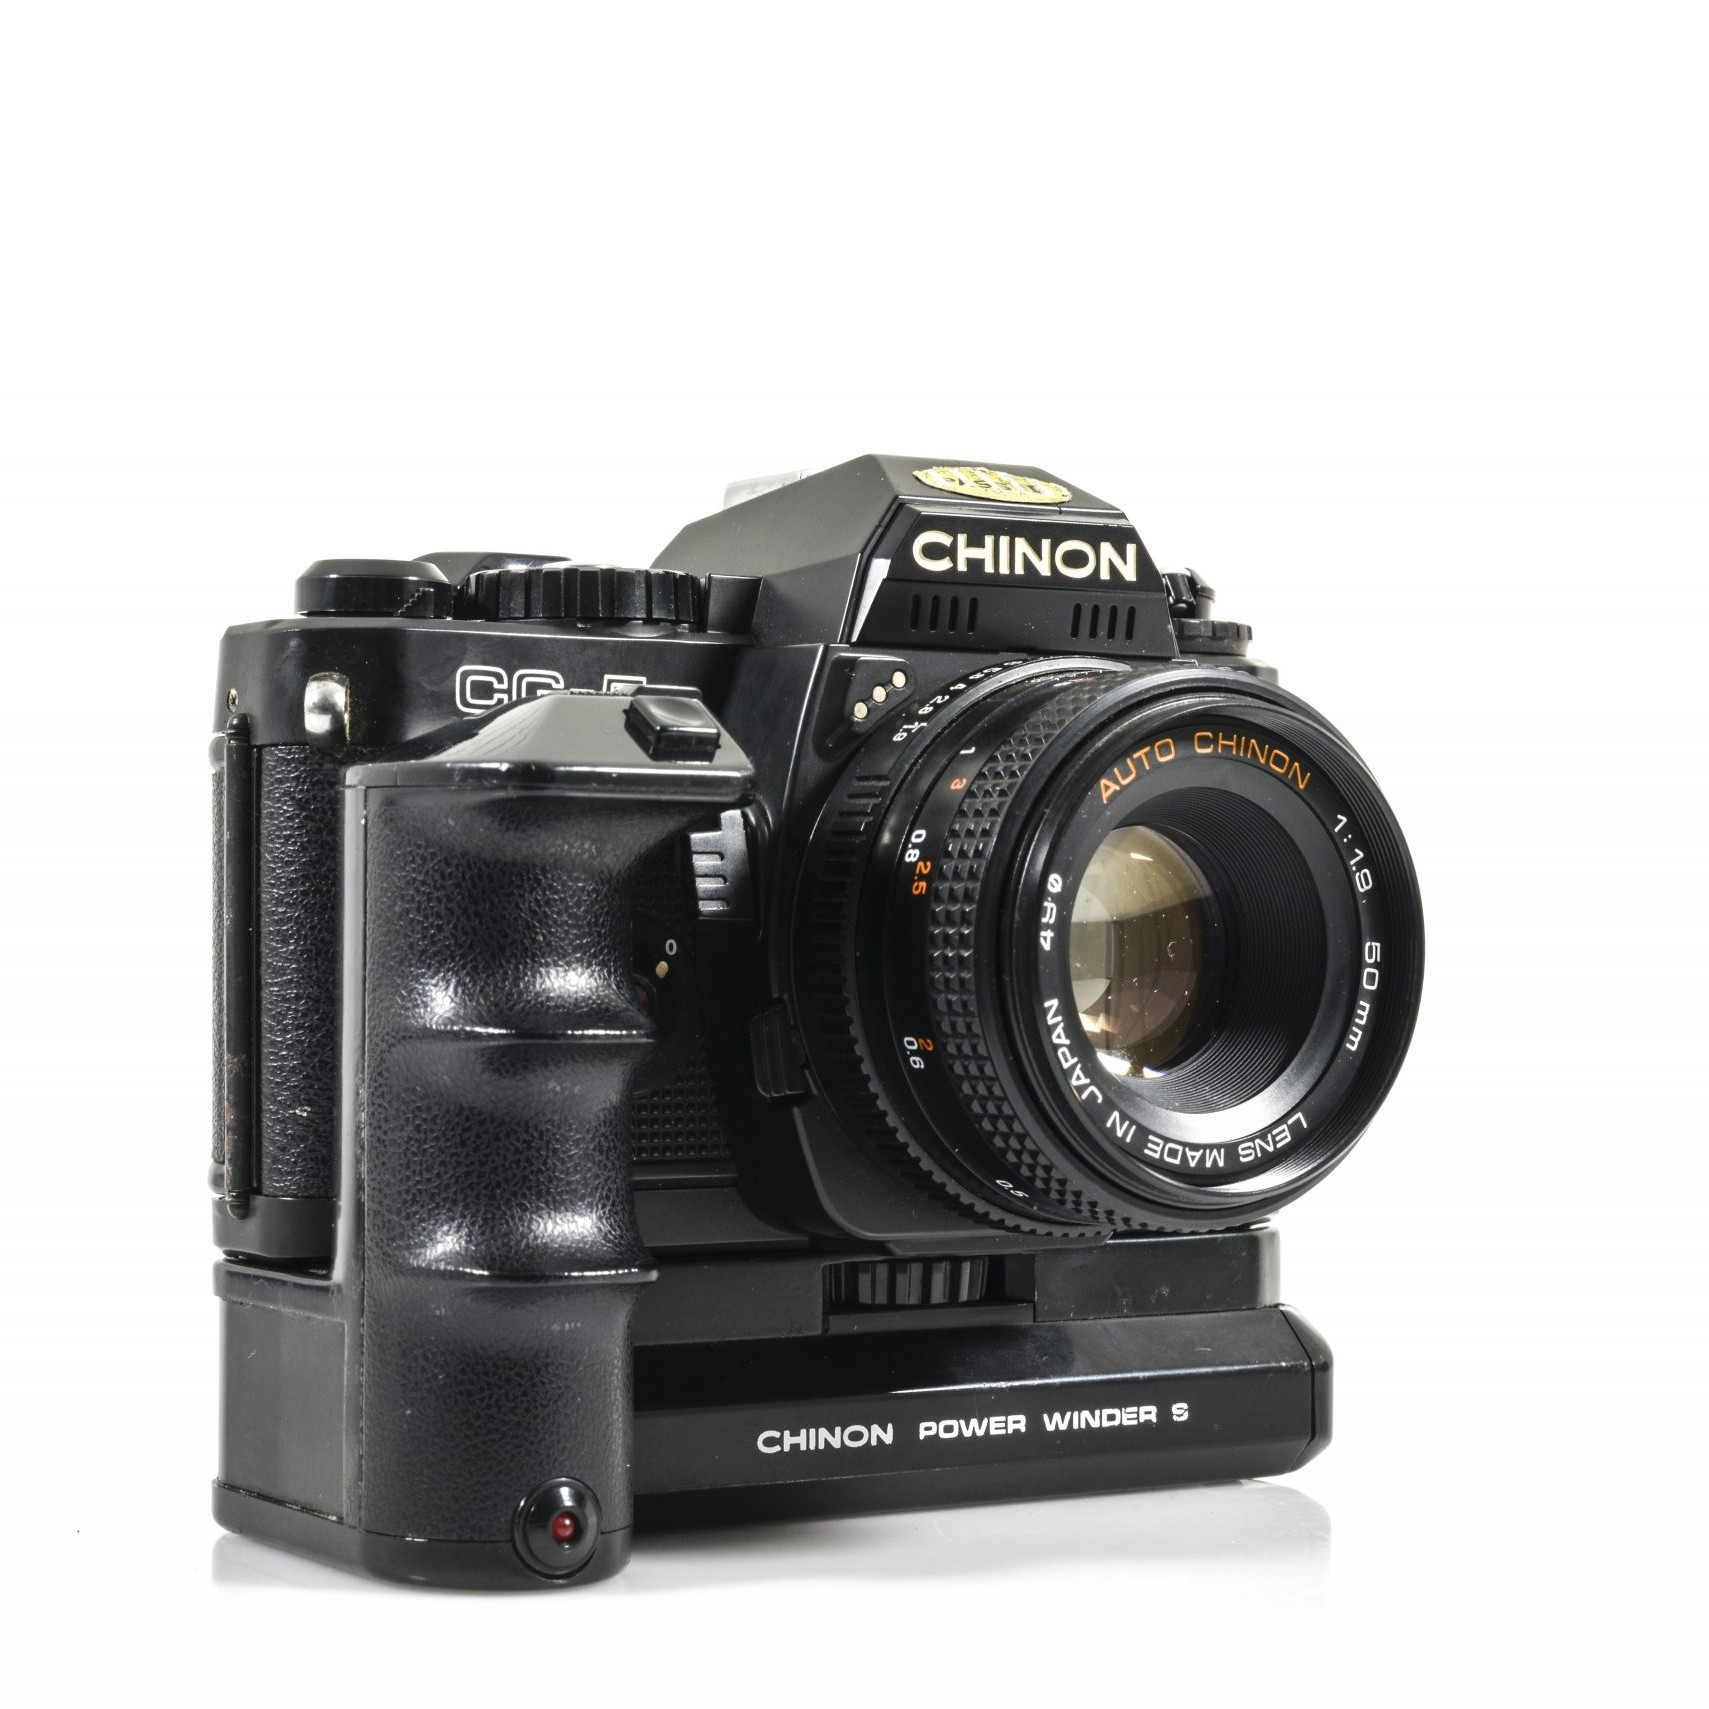 Brilliant Chinon CG-5 35mm Film Camera with Auto Chinon 50mm F1.9 Lens plus Power Film Winder and Battery Grip